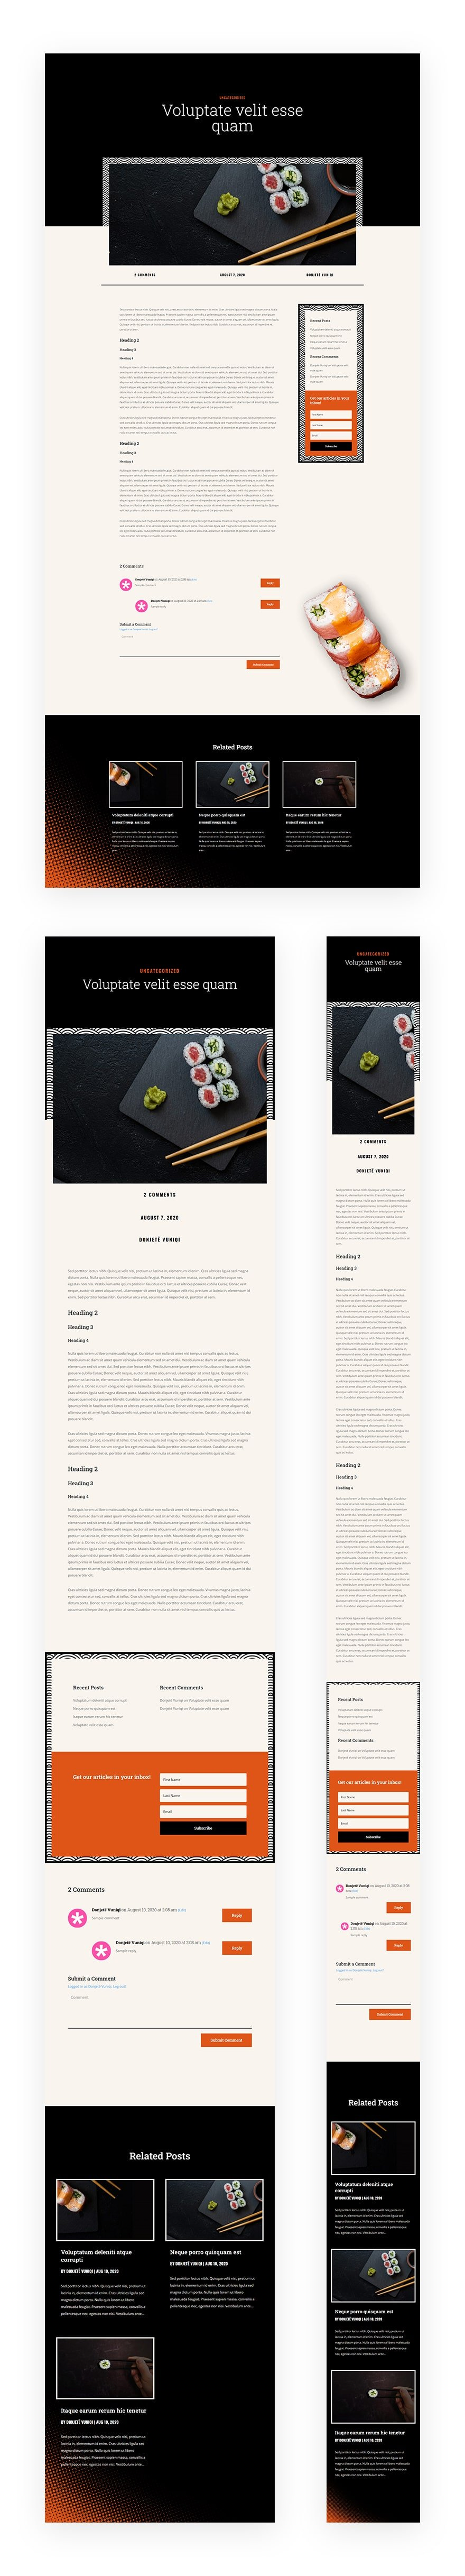 sushi restaurant blog post template